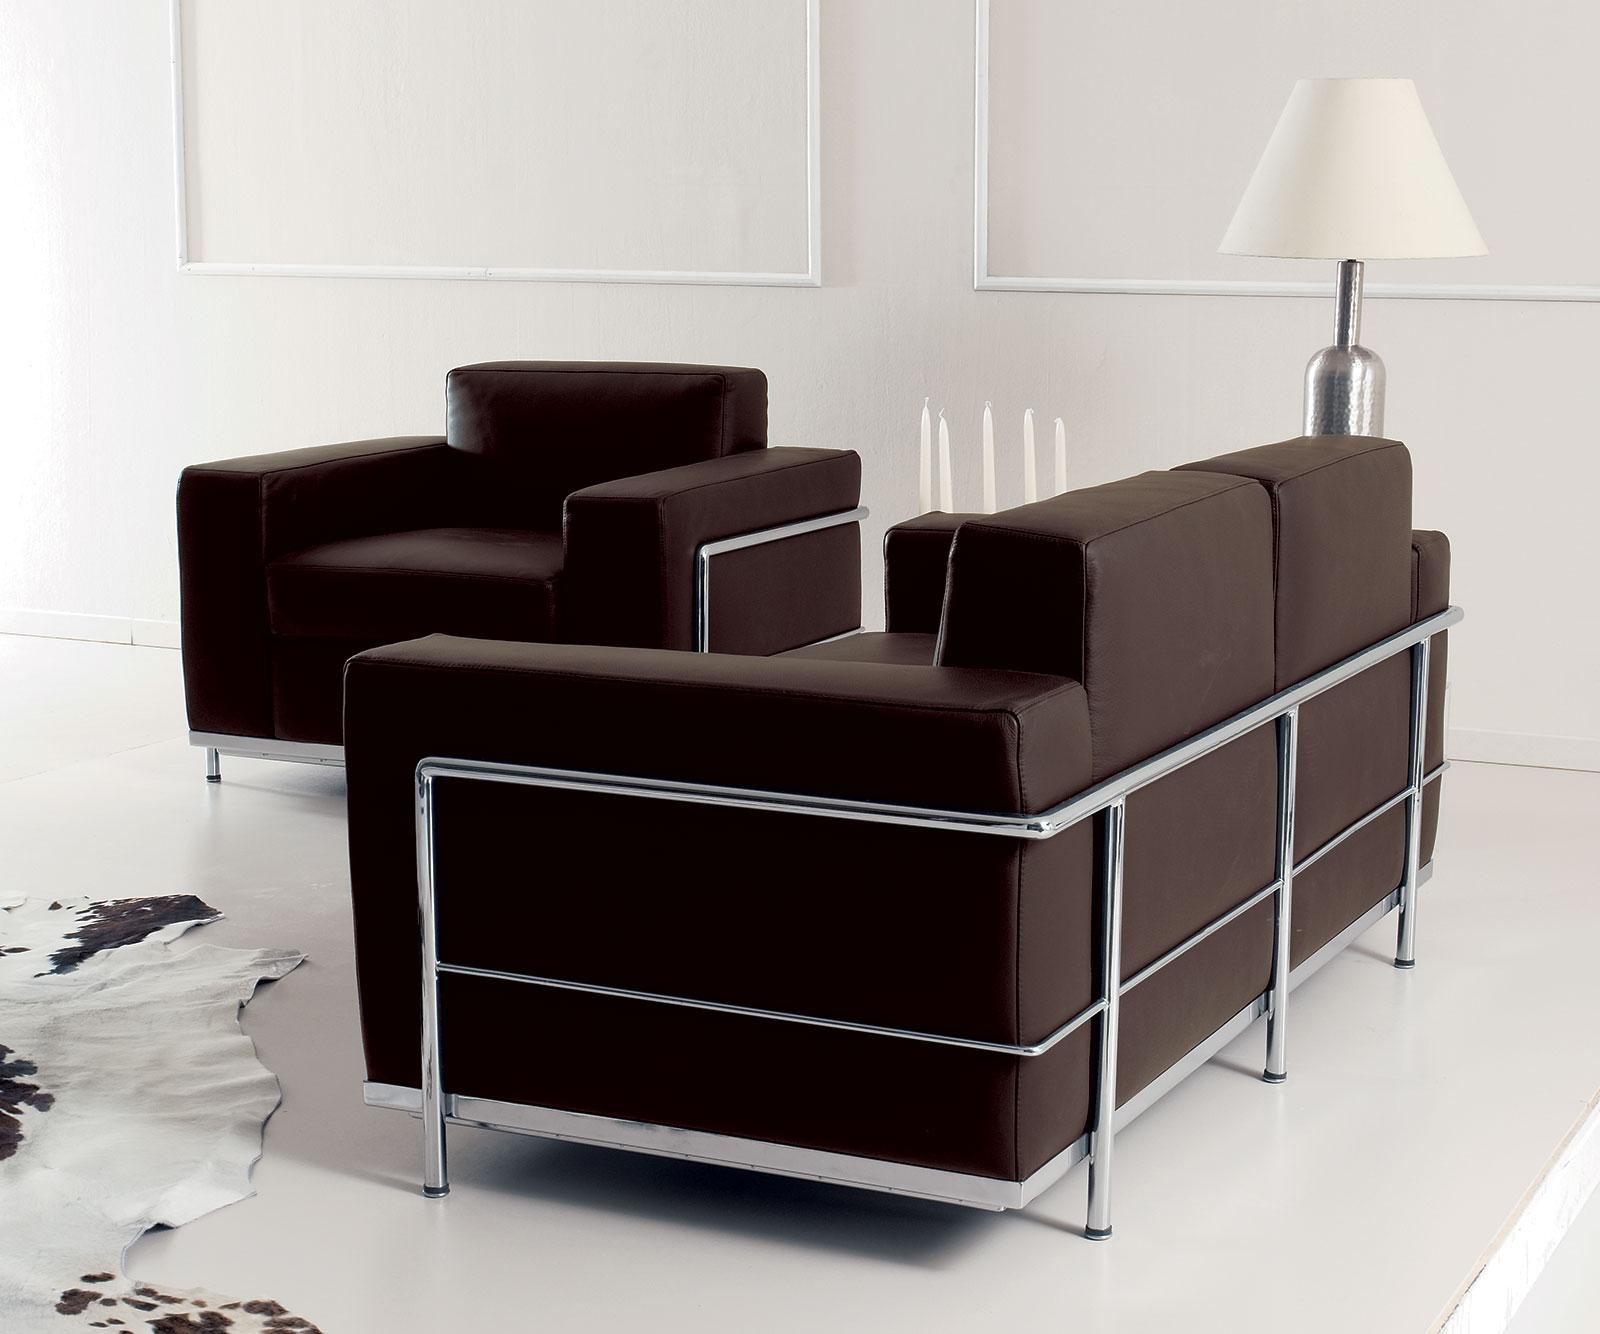 Cook 2 Seater Modern Leather Sofa Shop Online Italy Dream Design